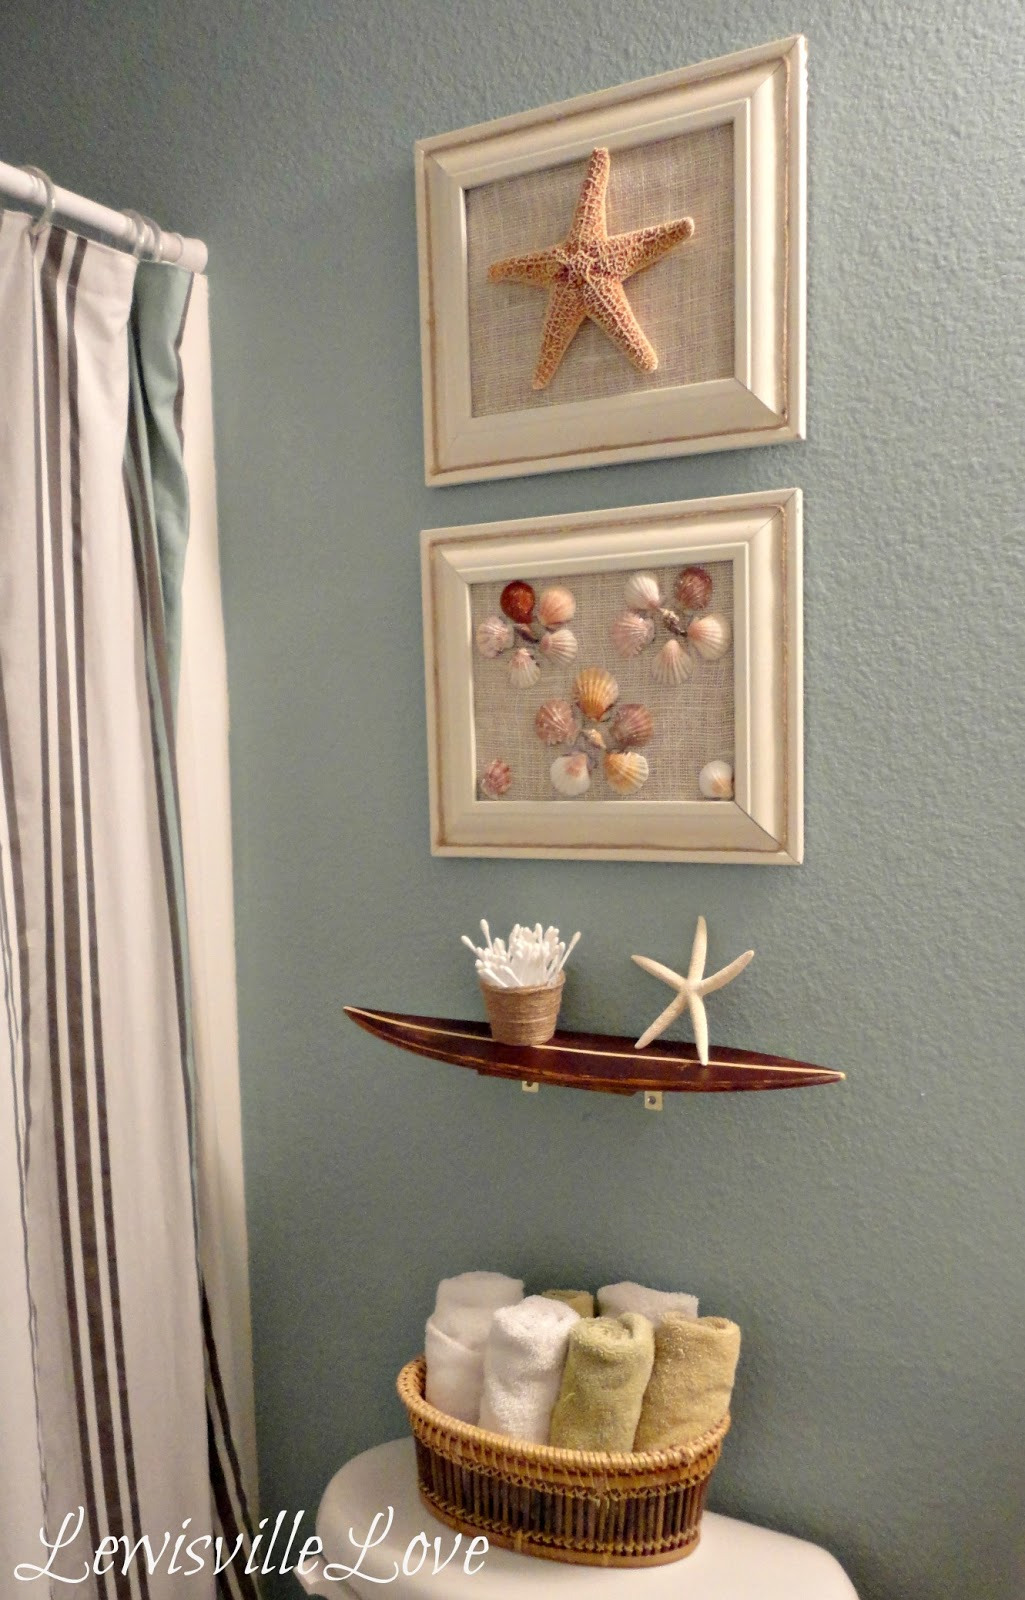 15 cute decor details for nautical bathroom style motivation for nautical bathroom decor 50 ideas about nautical bathroom decor